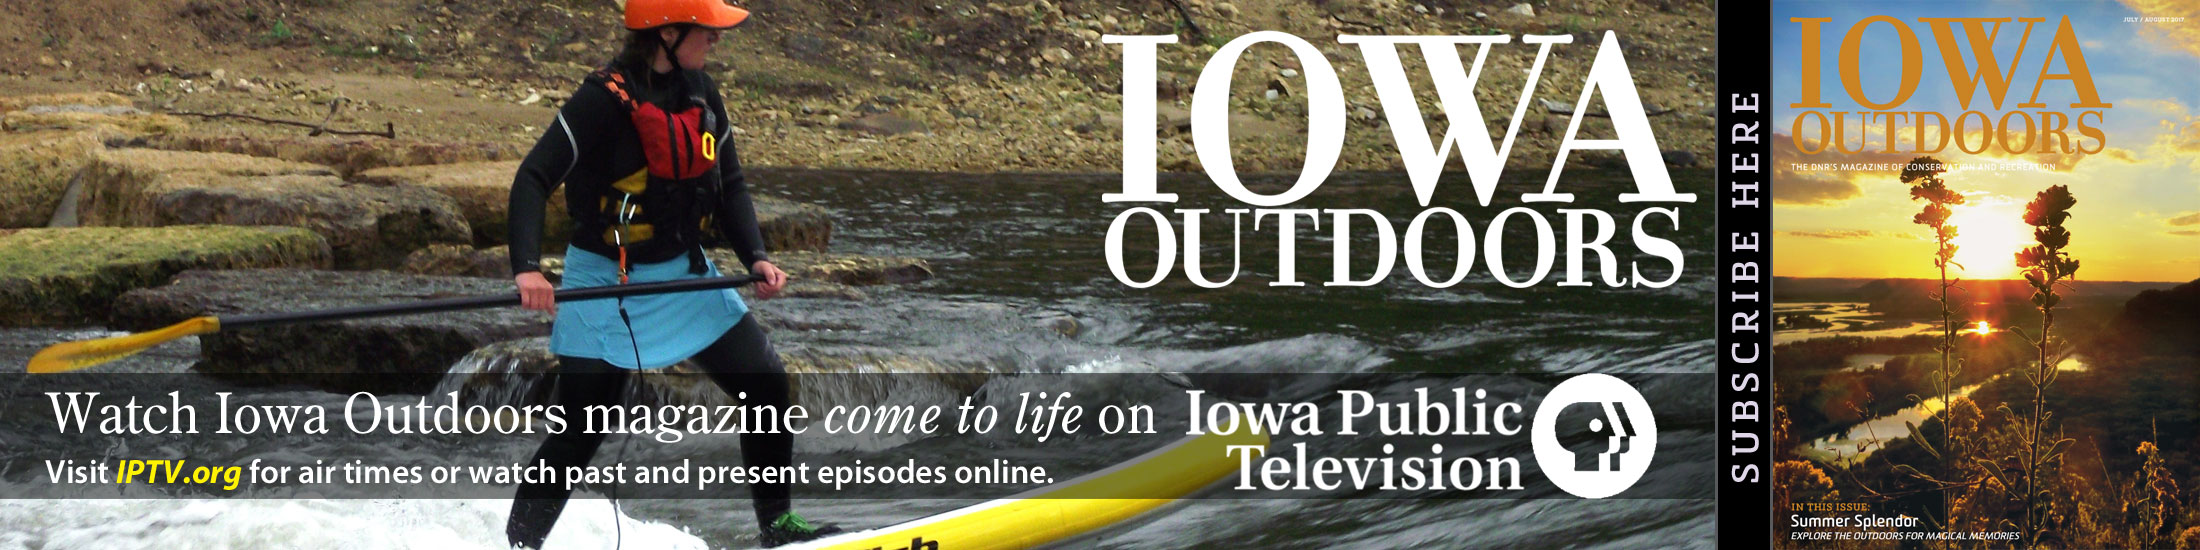 Iowa Outdoors Magazine, TV Show